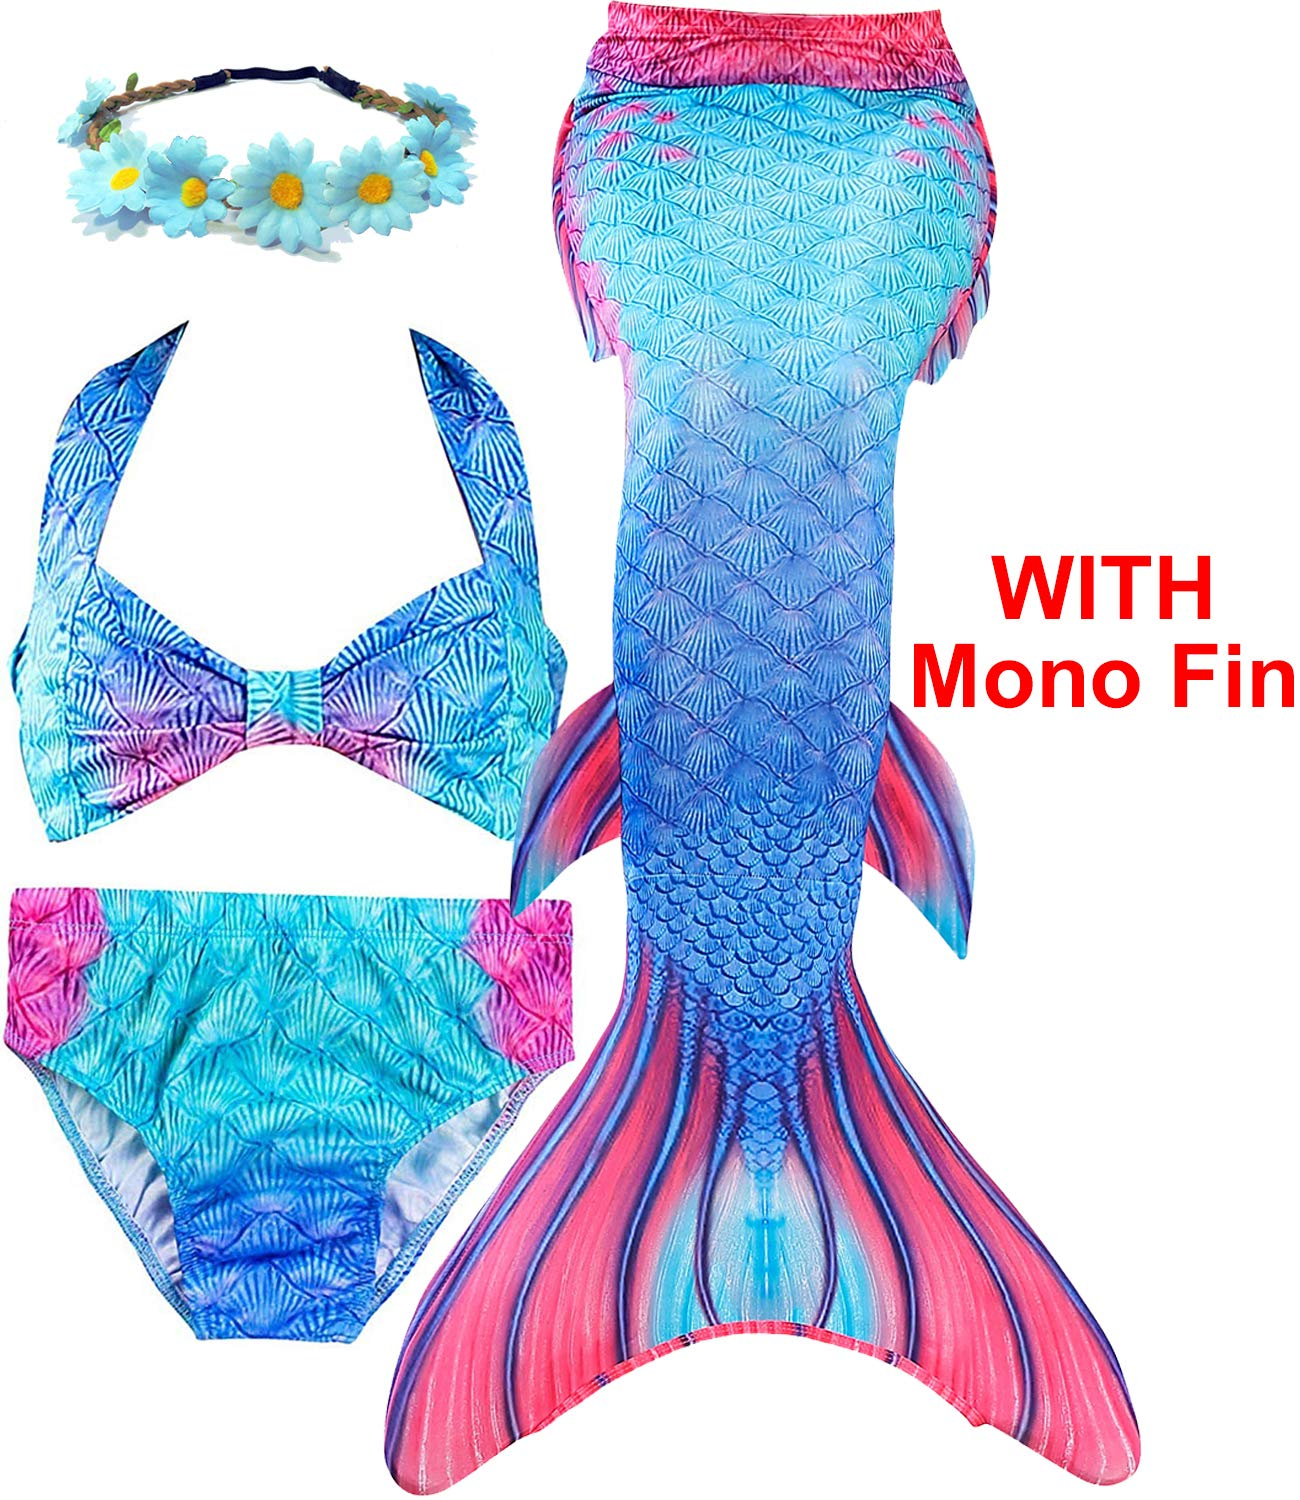 Garlagy 3 Pcs Girls Swimsuit Mermaid Tails for Swimming Bikini Set Bathing Suit Swimmable Can Add Monofin for 3-14Y (5-6/Ht:45-47in(tag 120), A- Blue Flame (with Monofin))